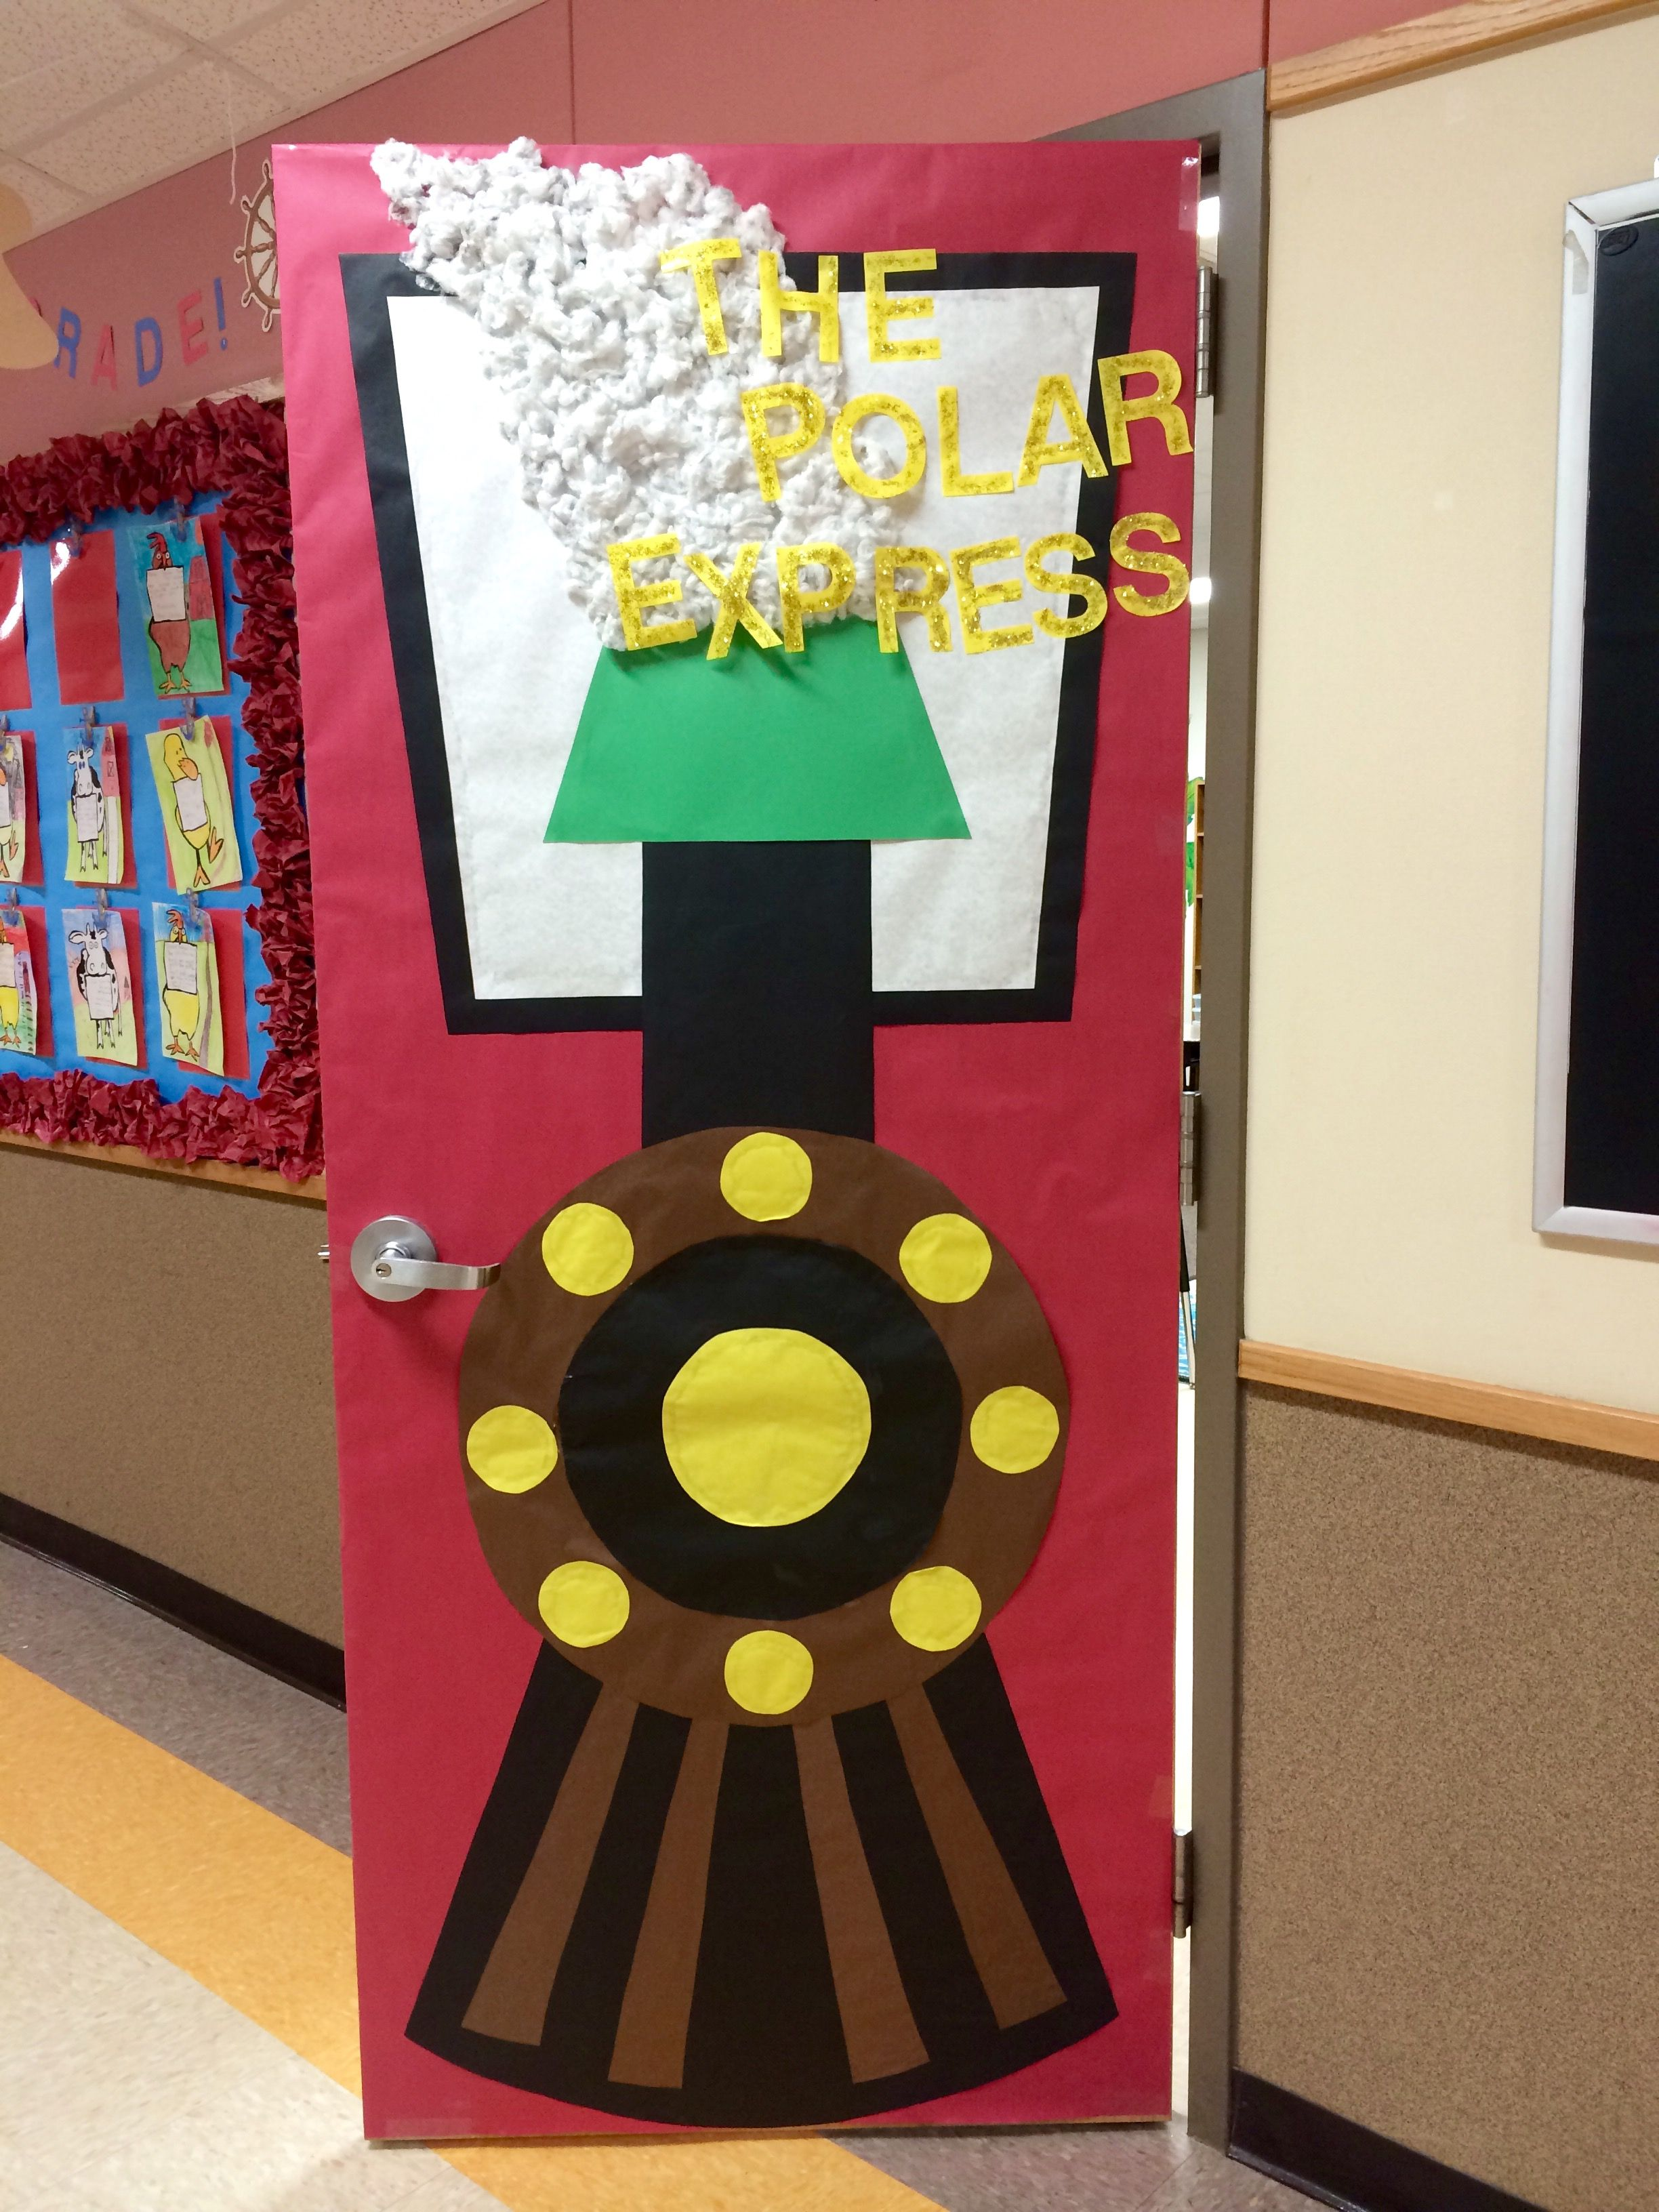 All Aboard the Polar Express! Classroom Christmas Door